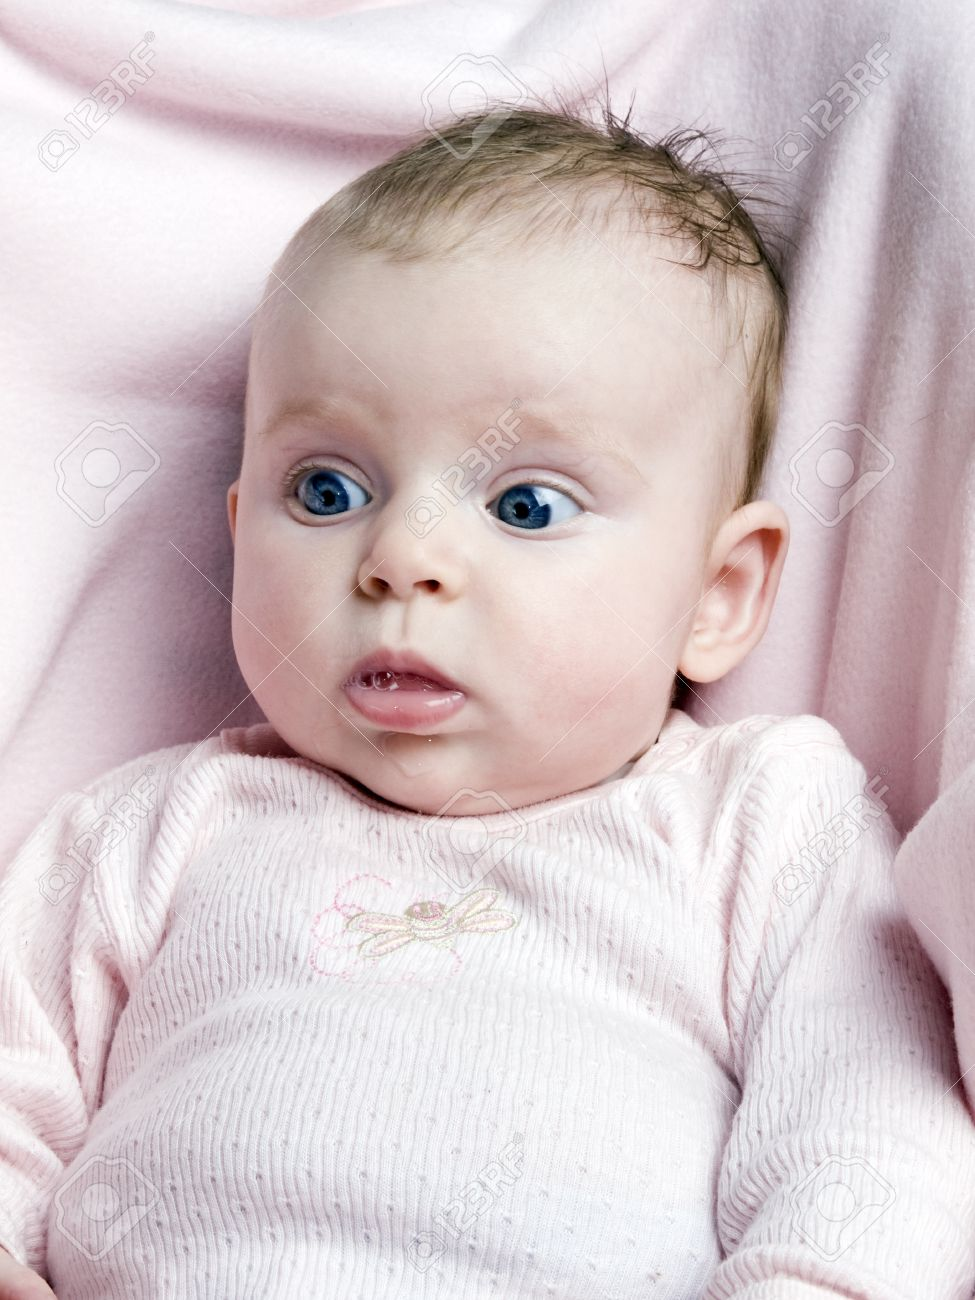 Cute newborn baby girl with big blue eyes on pink background stock photo 9748869